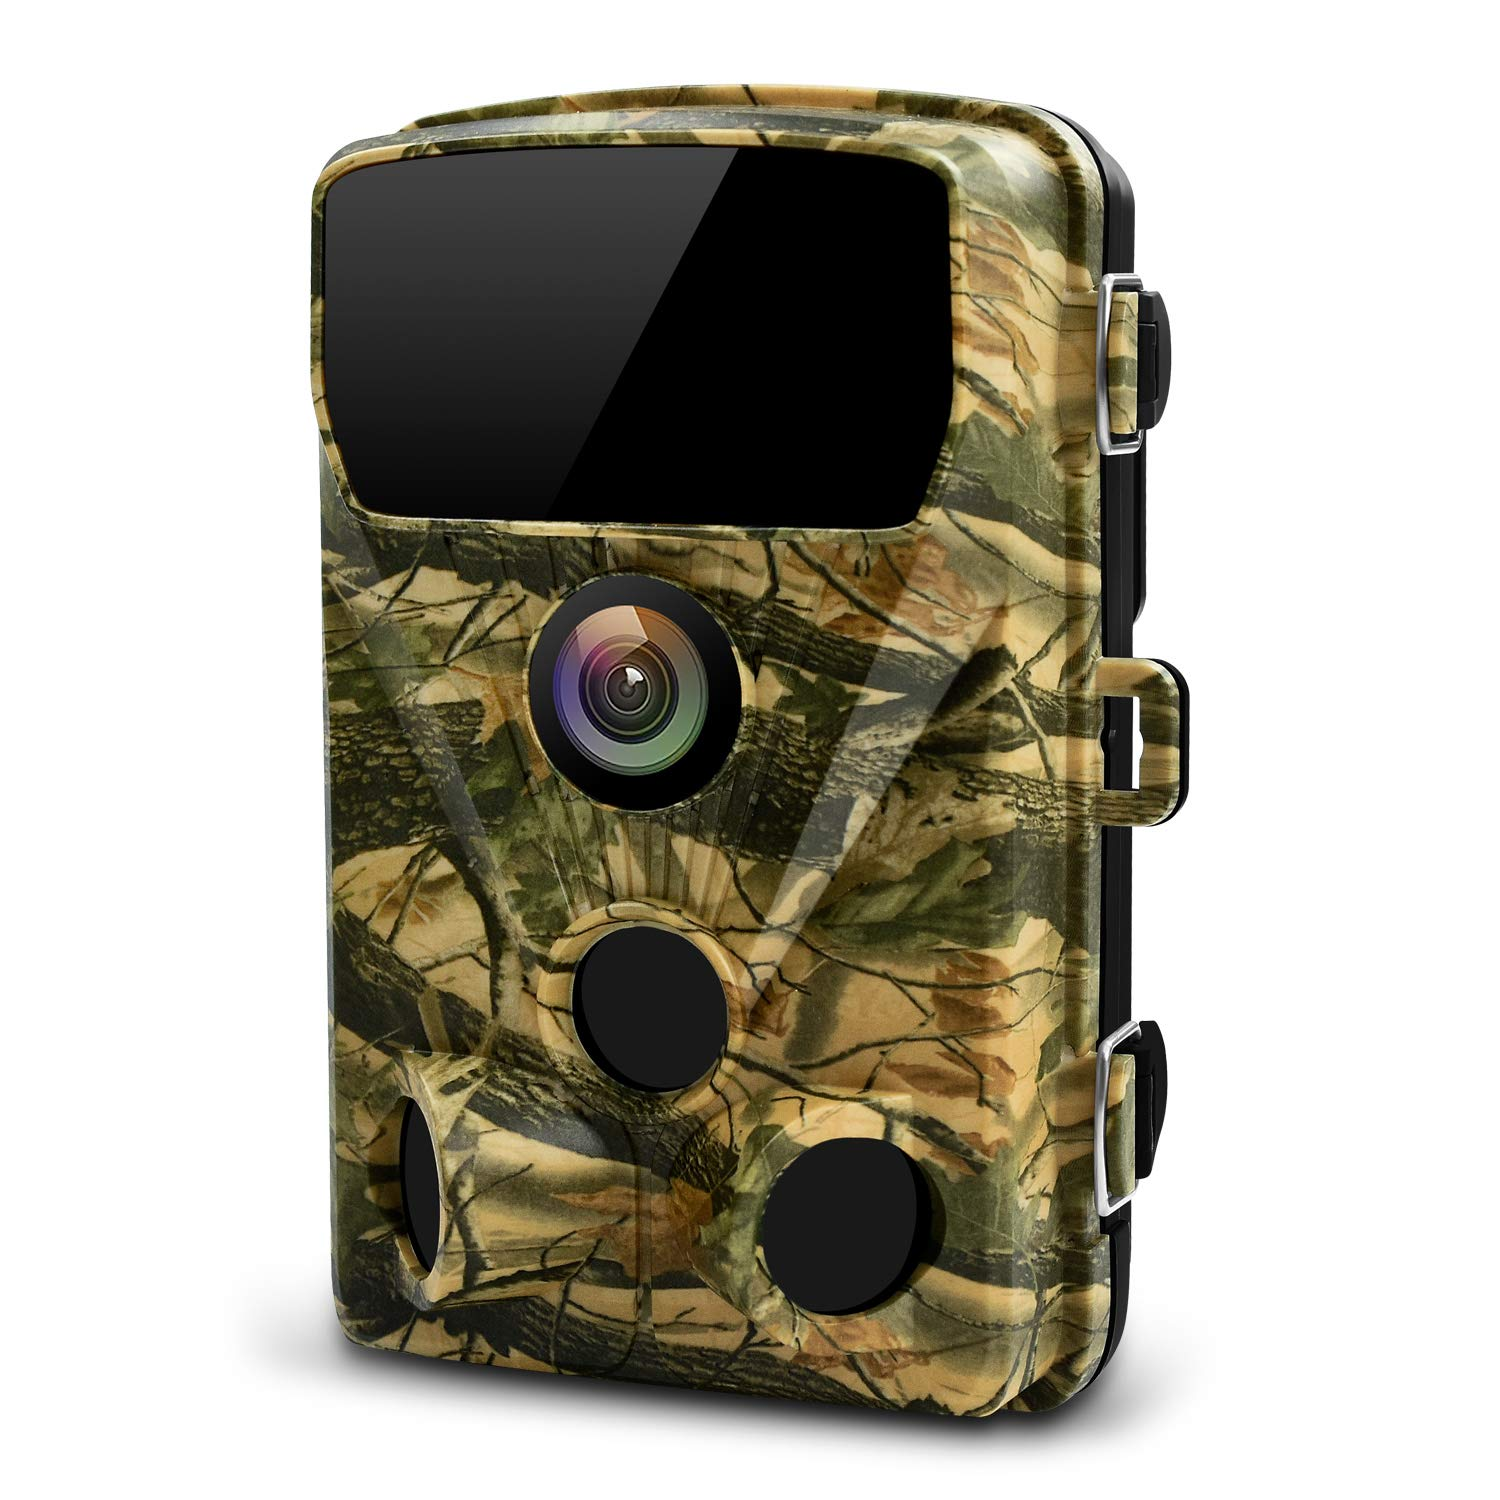 LETSCOM 14MP Trail Game Camera 0.4s Trigger Speed, Waterproof HD Wildlife Scouting Cam 42 Low-Glow IR LEDs, 120° Wide Angle for Hunting and Outdoor Surveillance (Yellow)